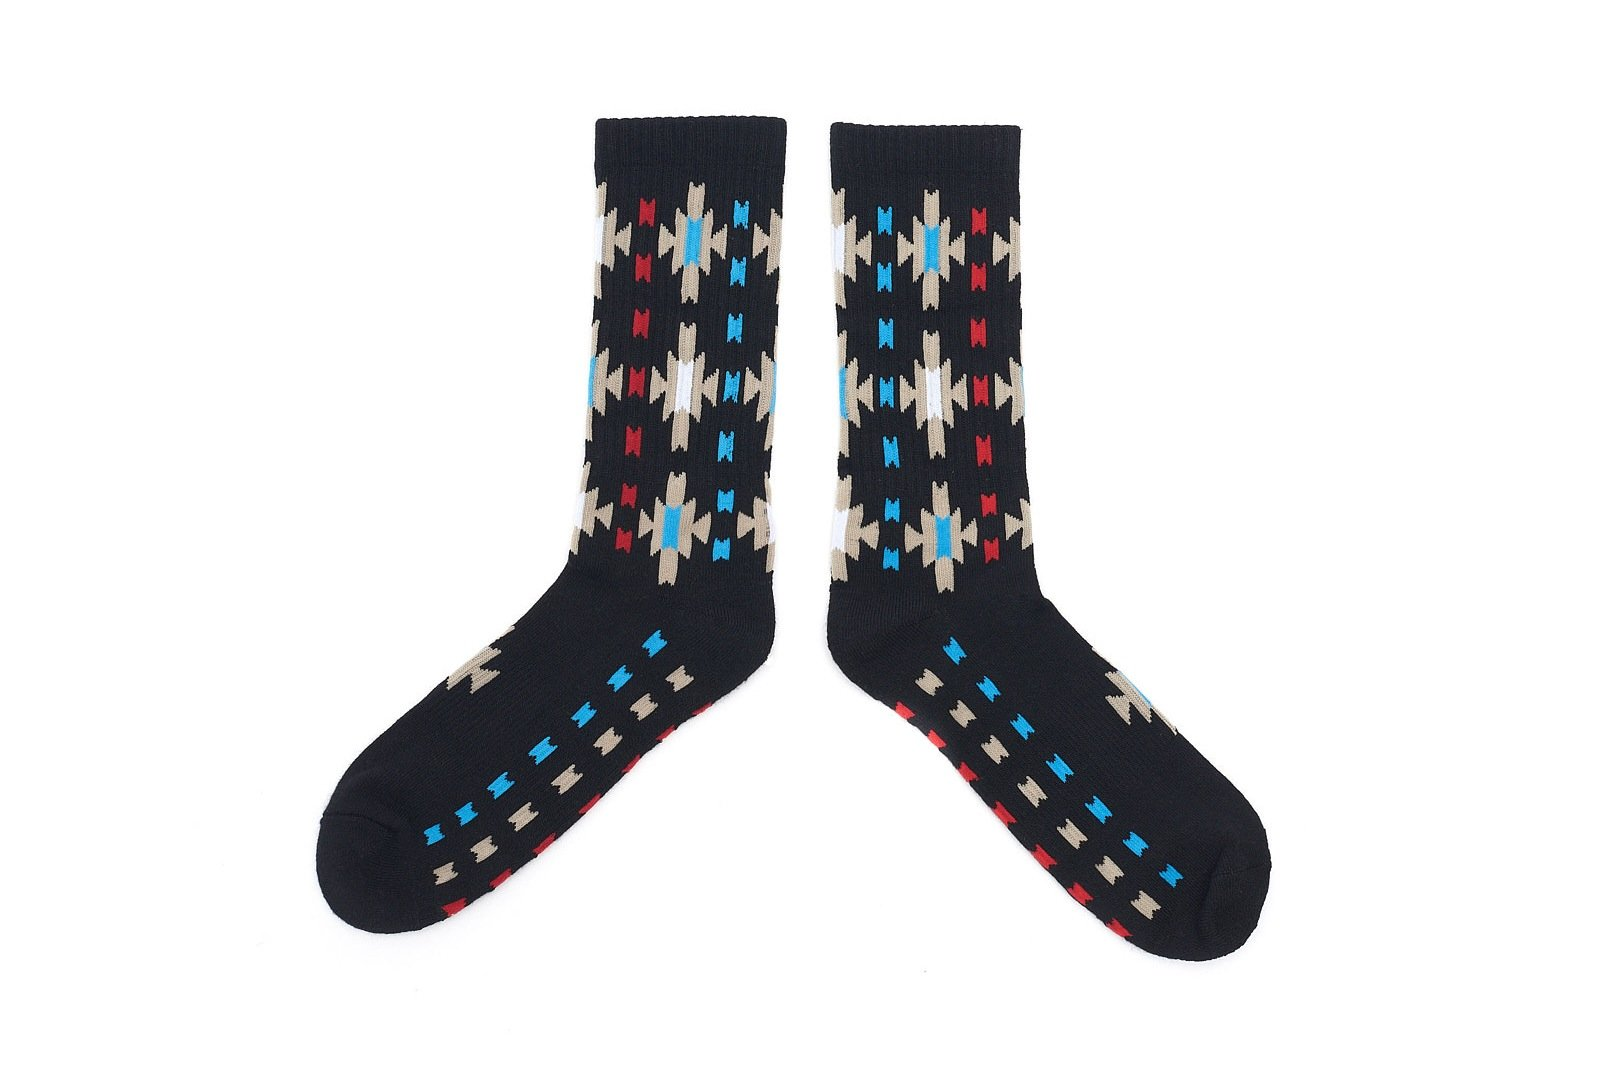 Starburst Socks - Black